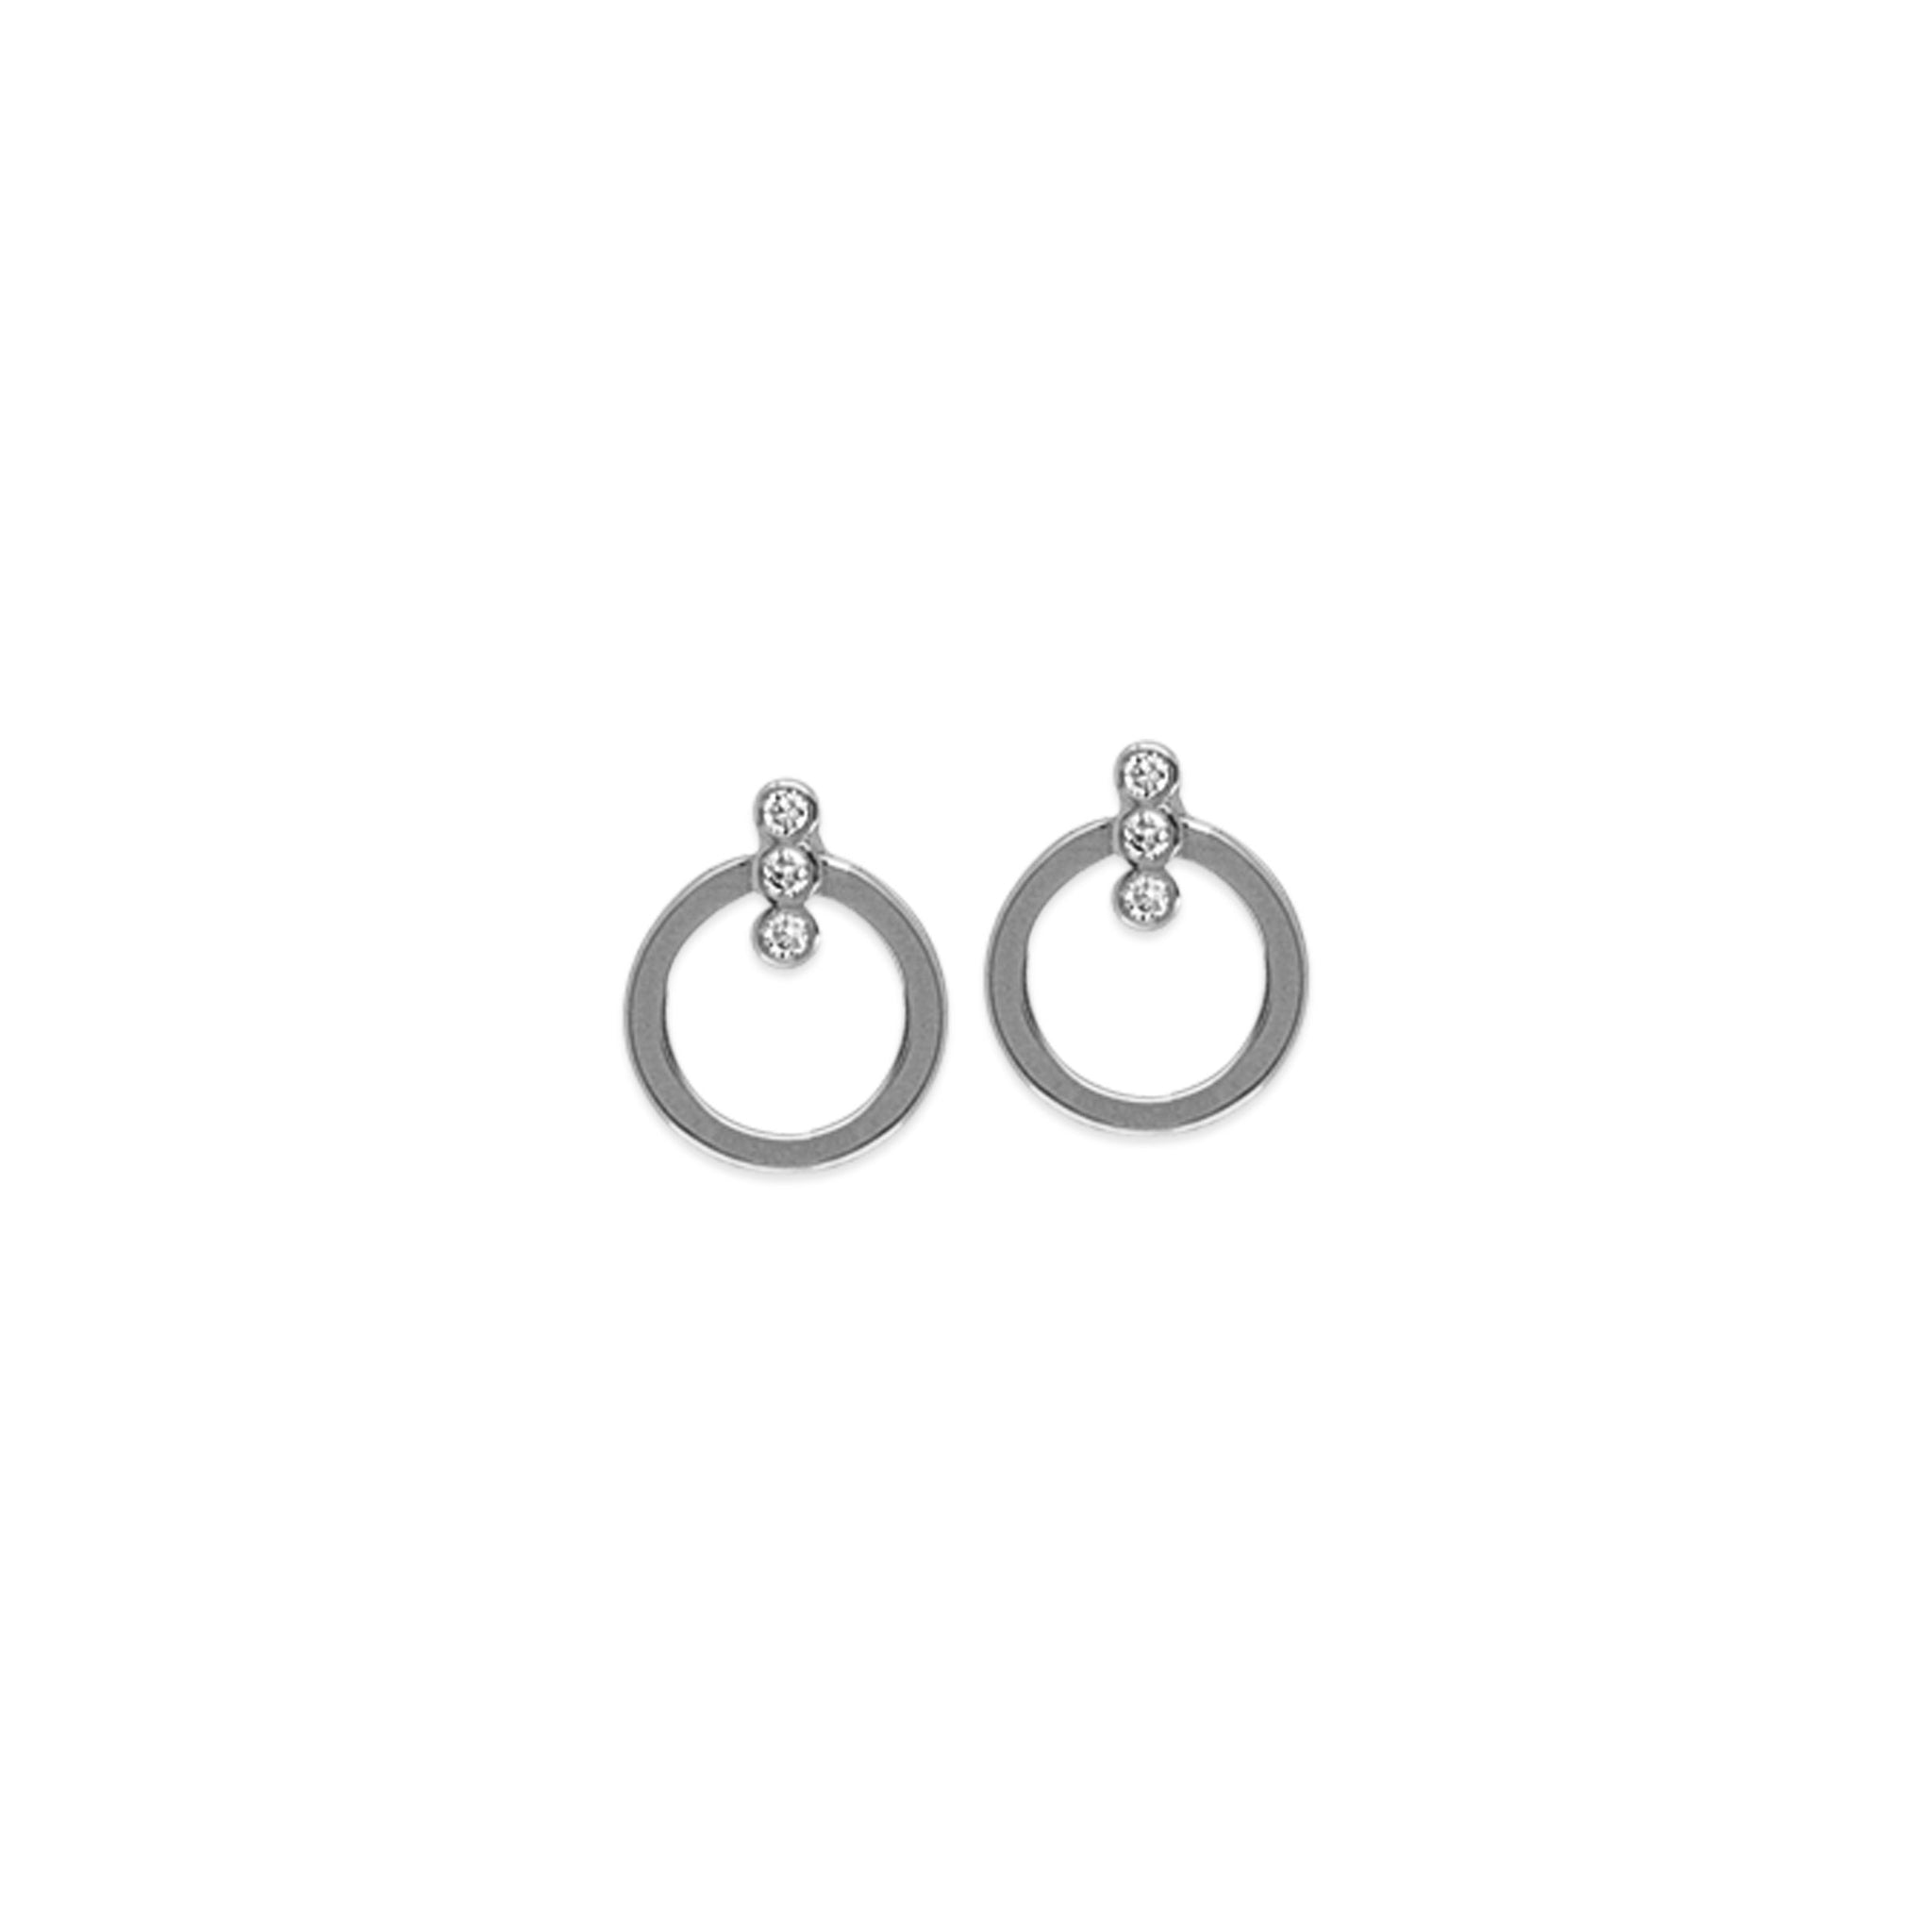 April Circle Stud Earrings w/ Diamonds